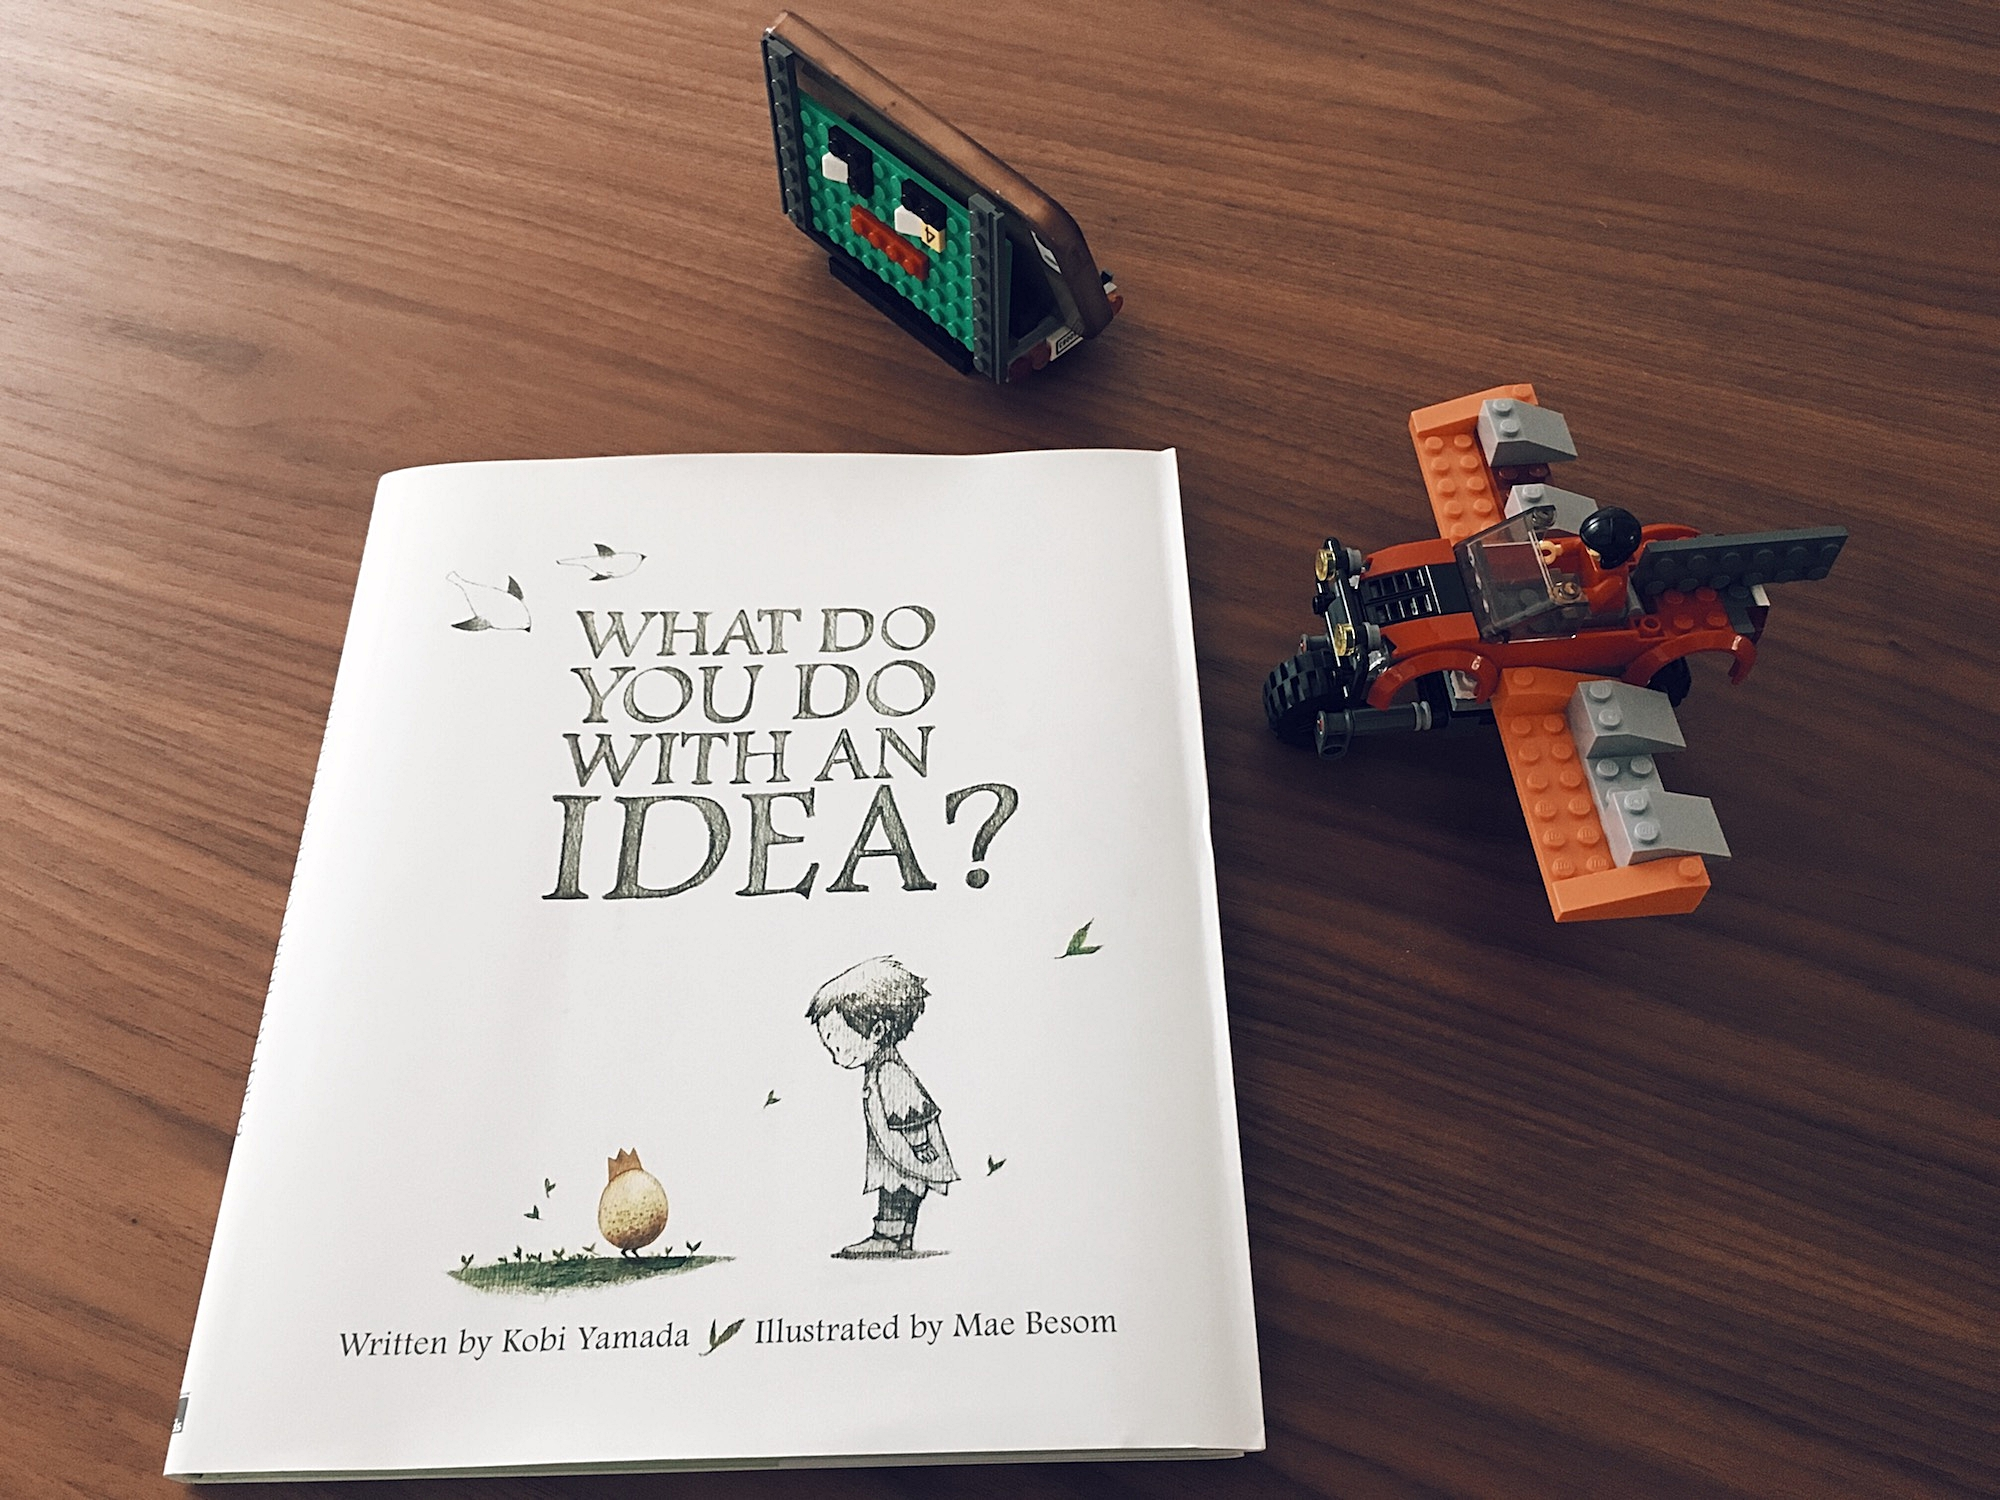 'What Do You Do With An Idea' Written by Kobi Yamada and Illustrated by Mae Besom